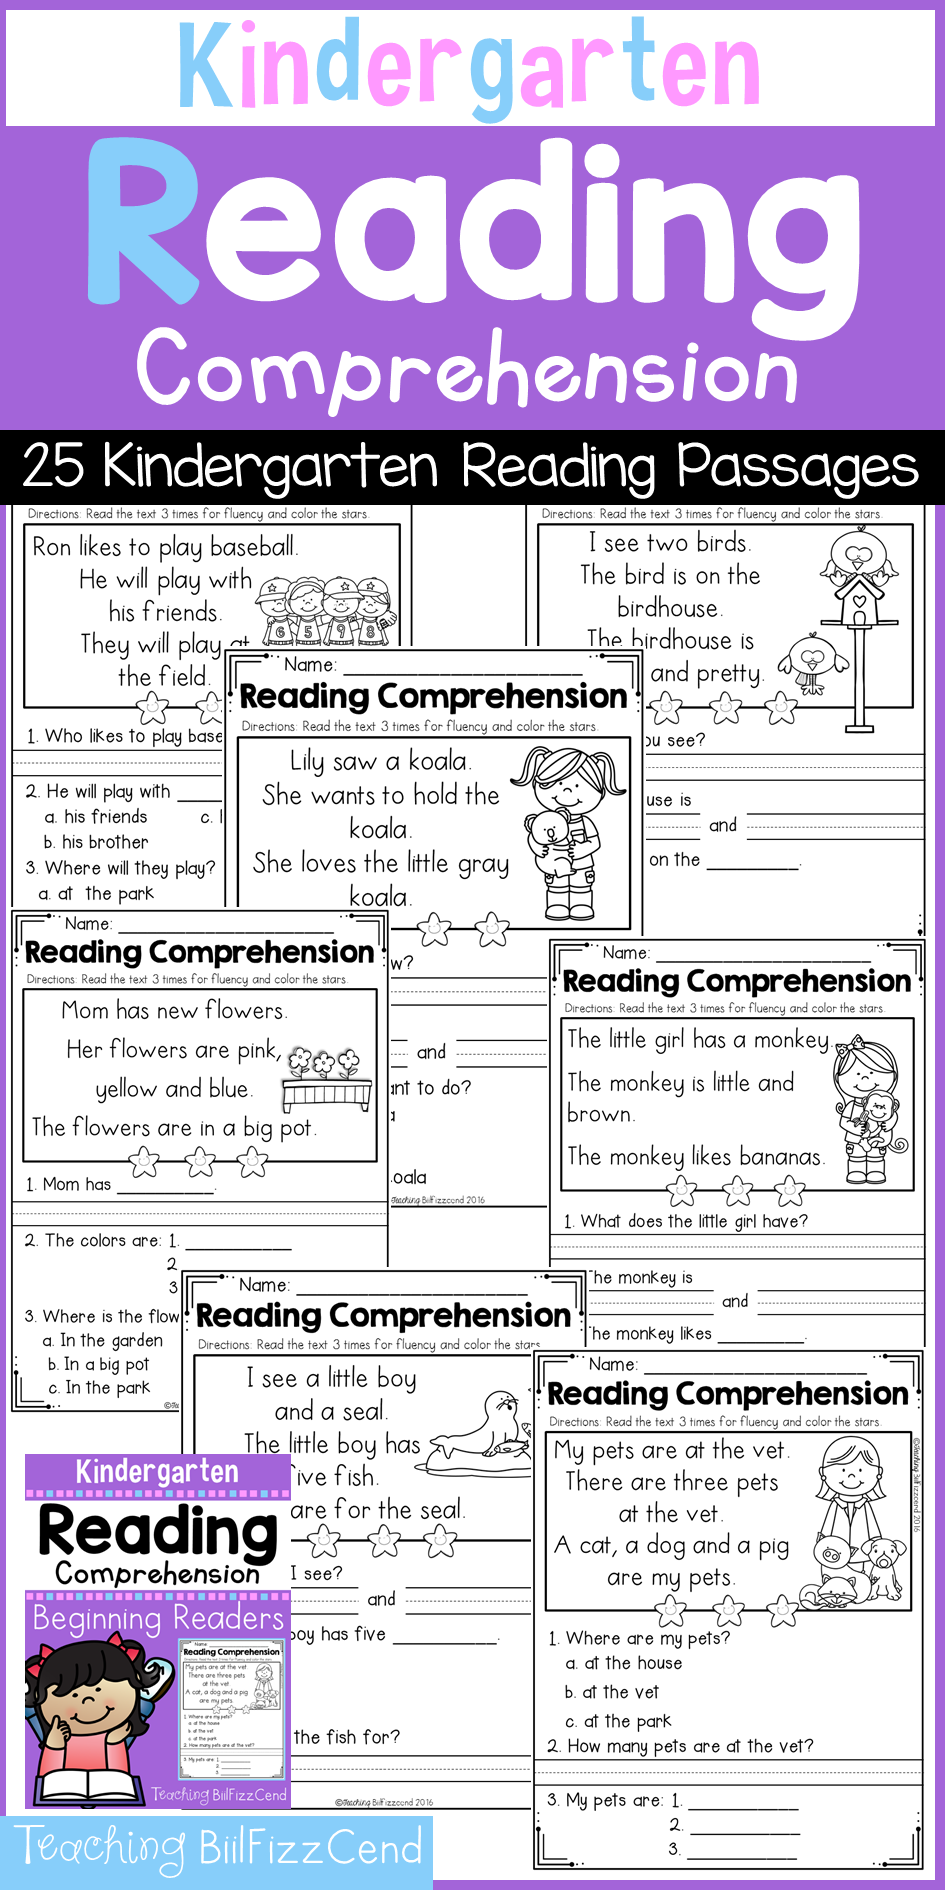 worksheet Kindergarten Listening Comprehension Worksheets kindergarten reading comprehension set 1 25 passages and fluency